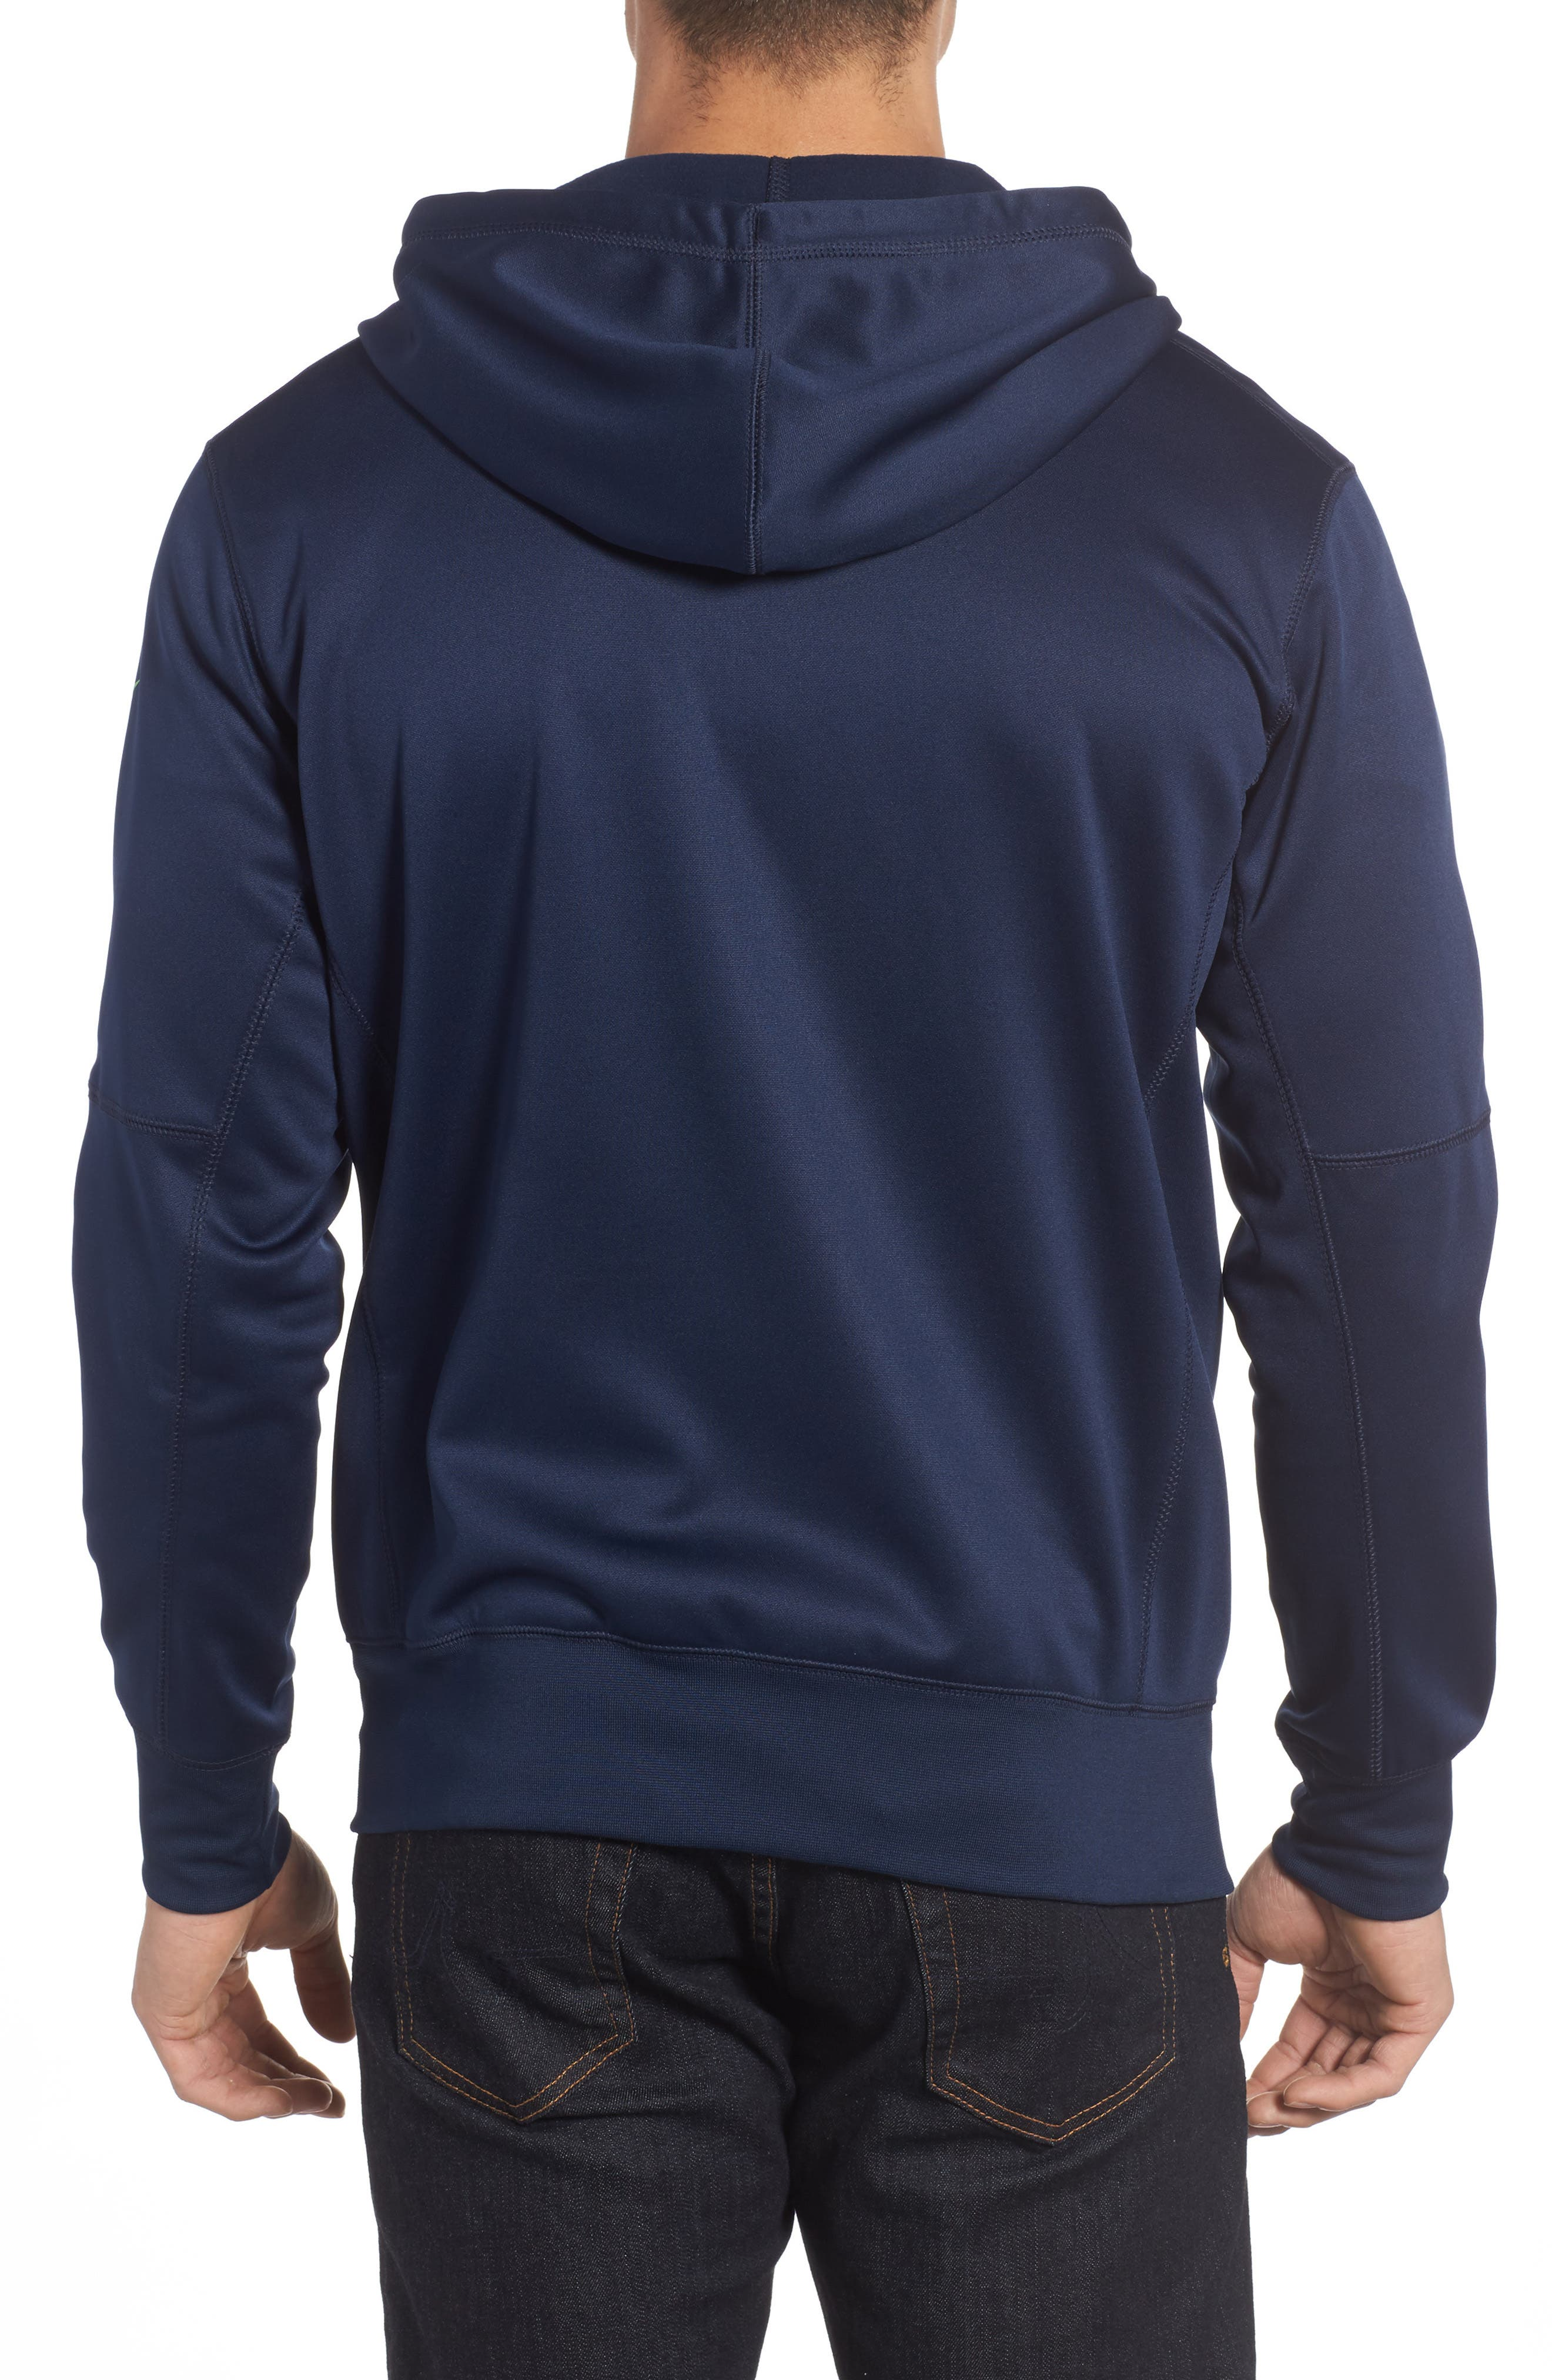 Therma-FIT NFL Graphic Zip Hoodie,                             Alternate thumbnail 2, color,                             Seahawks